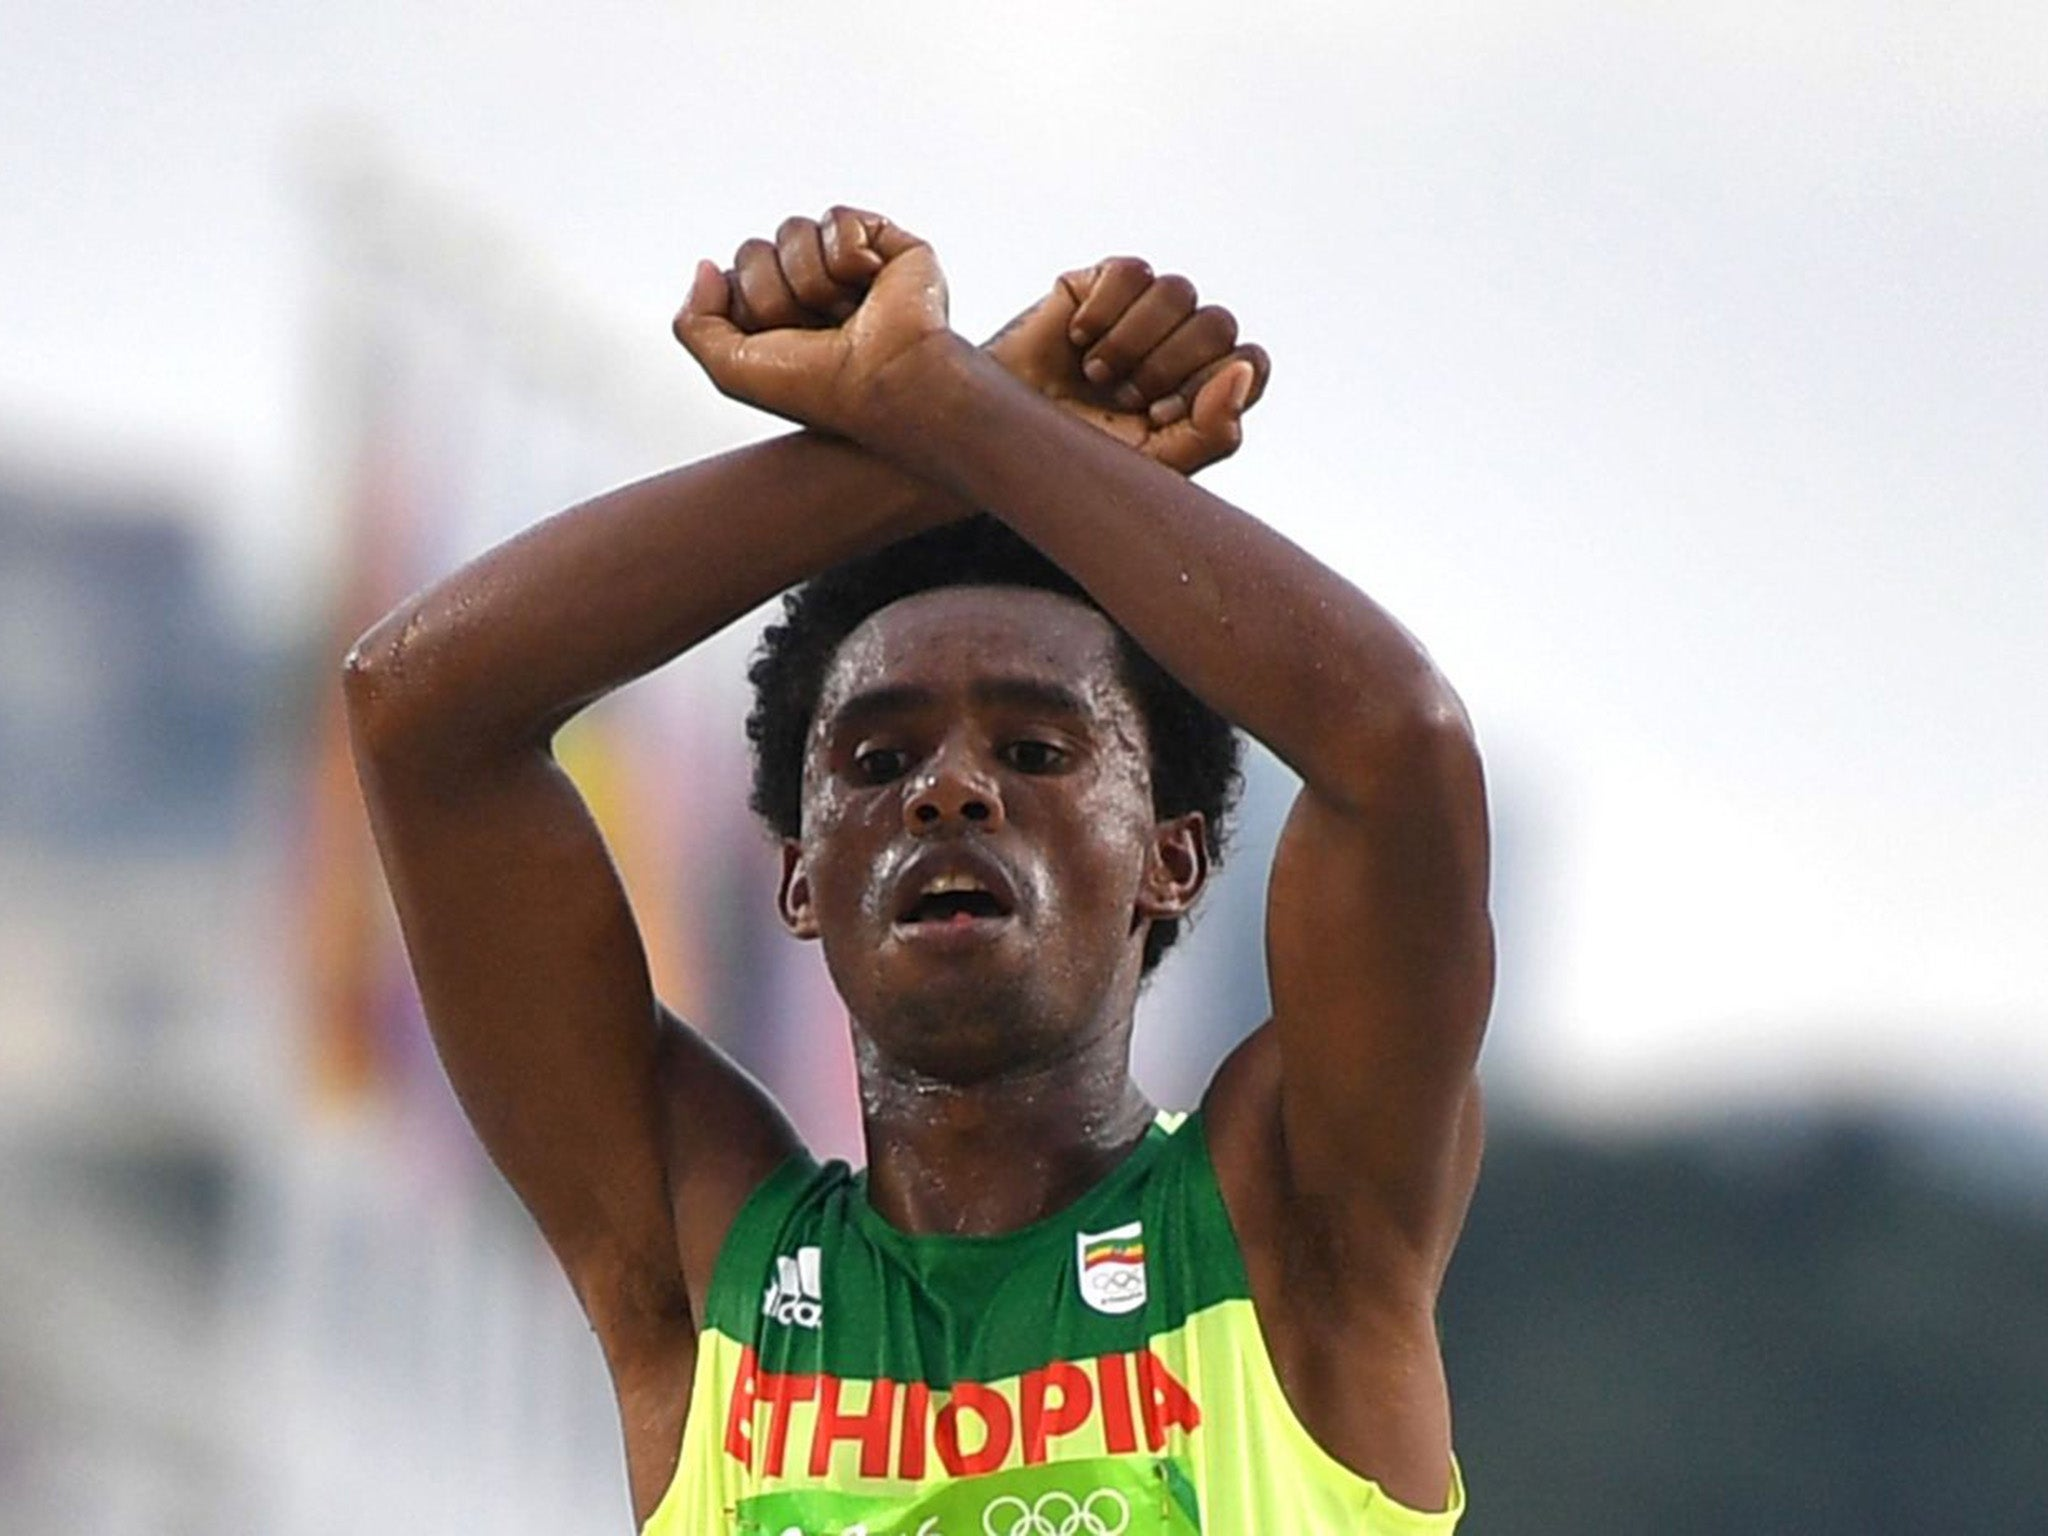 Ethiopian marathon runner could go to jail for anti-government protest on the finishing line